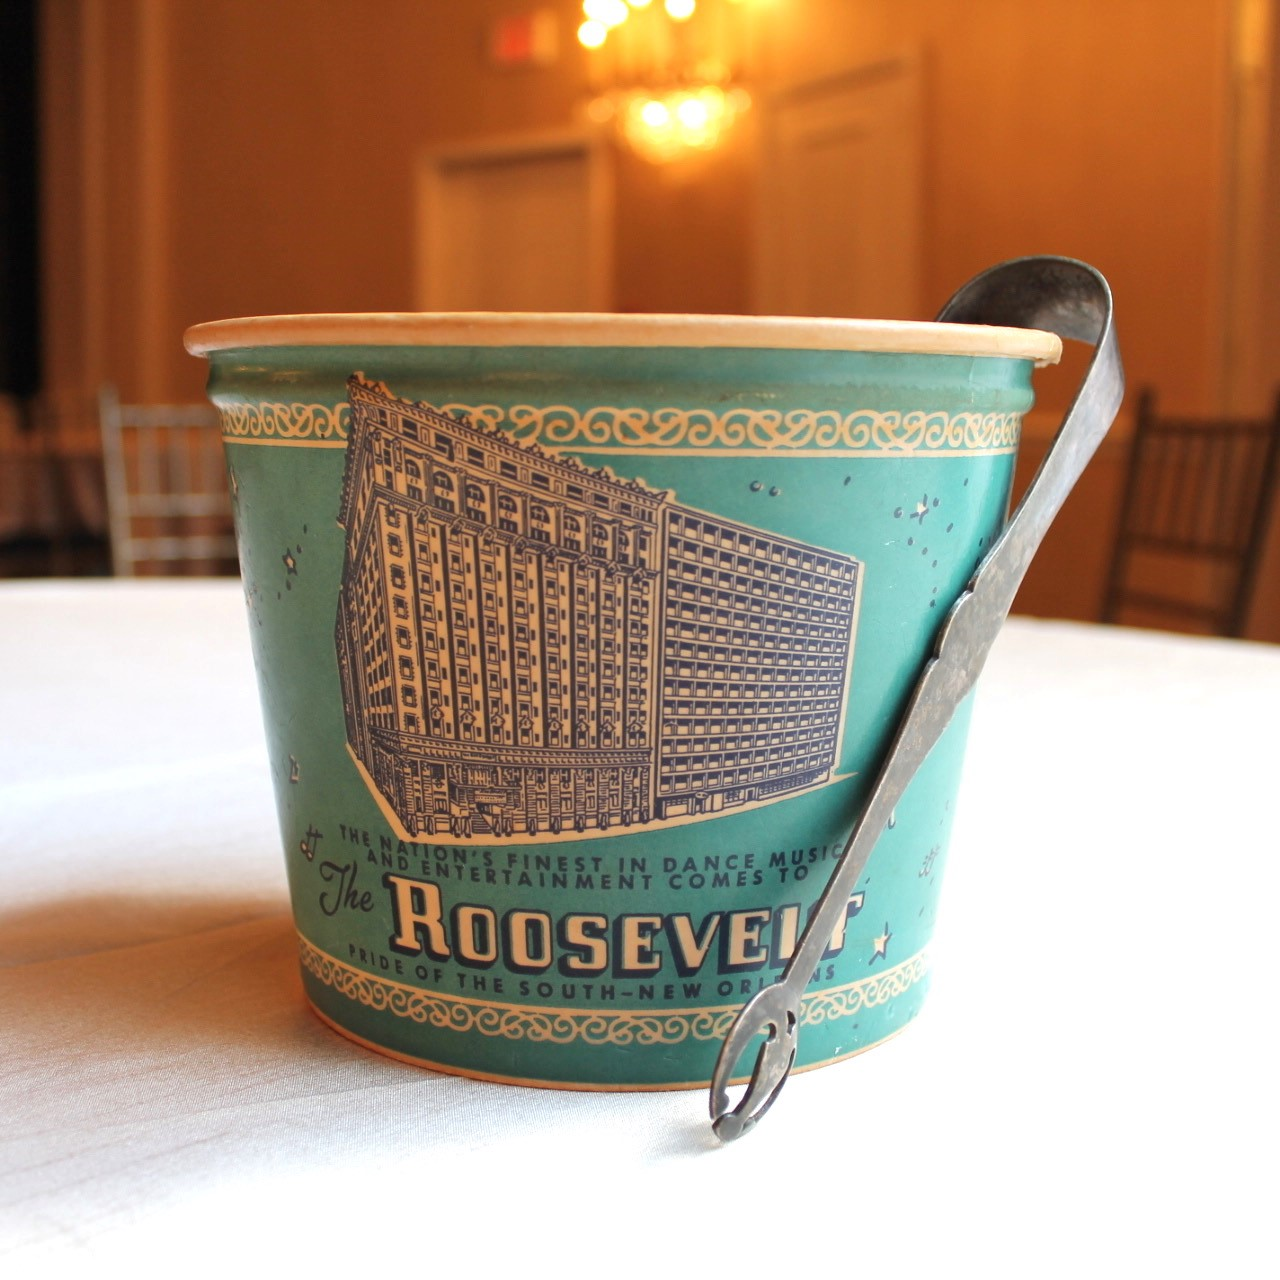 An ice bucket from mid the 1900s Roosevelt.